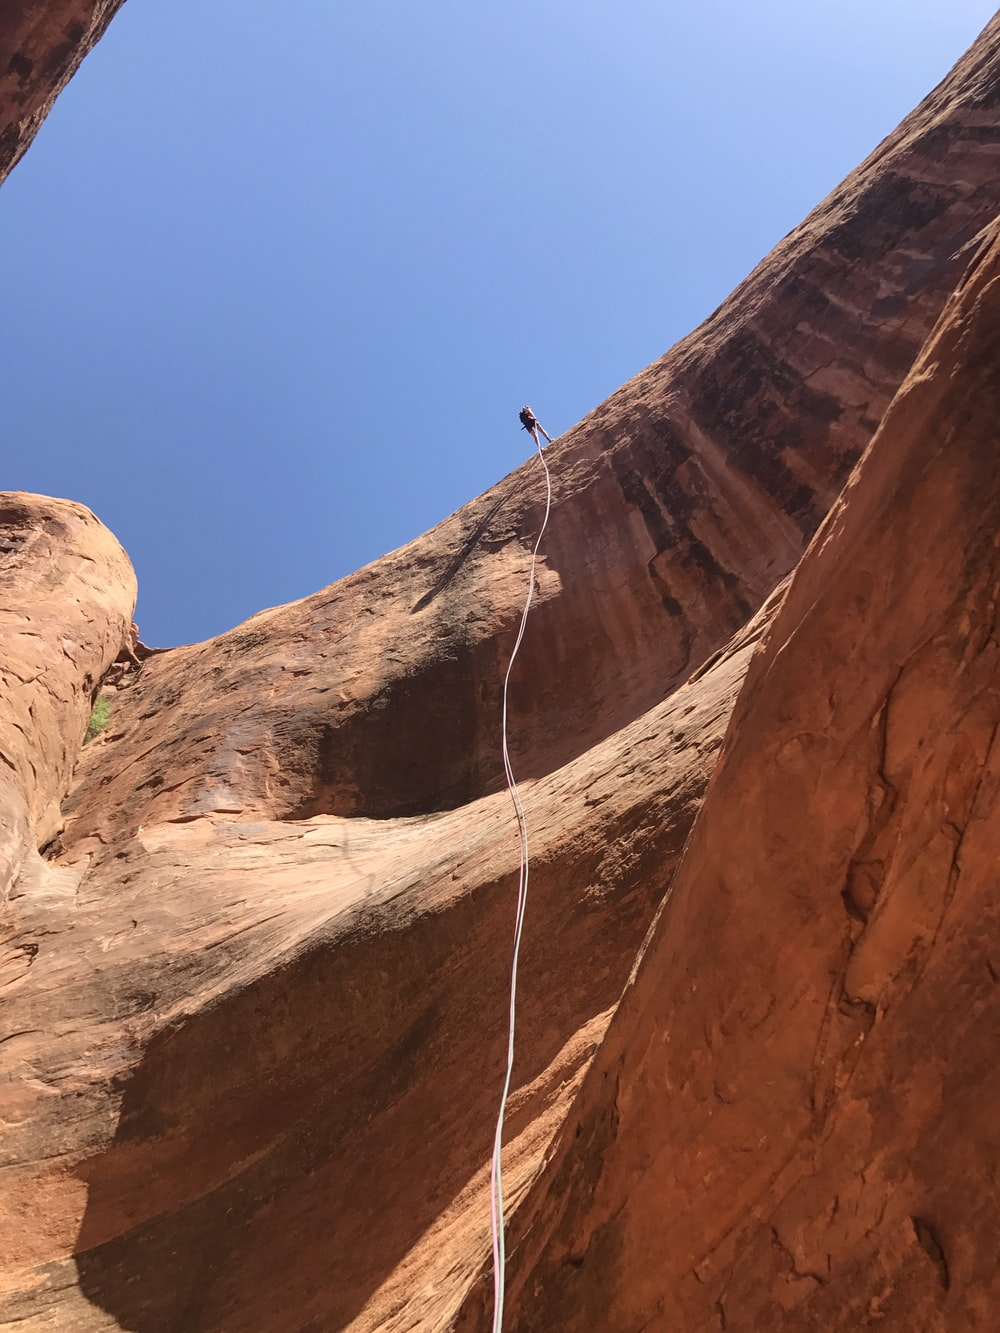 person climbing on brown rock formation during daytime